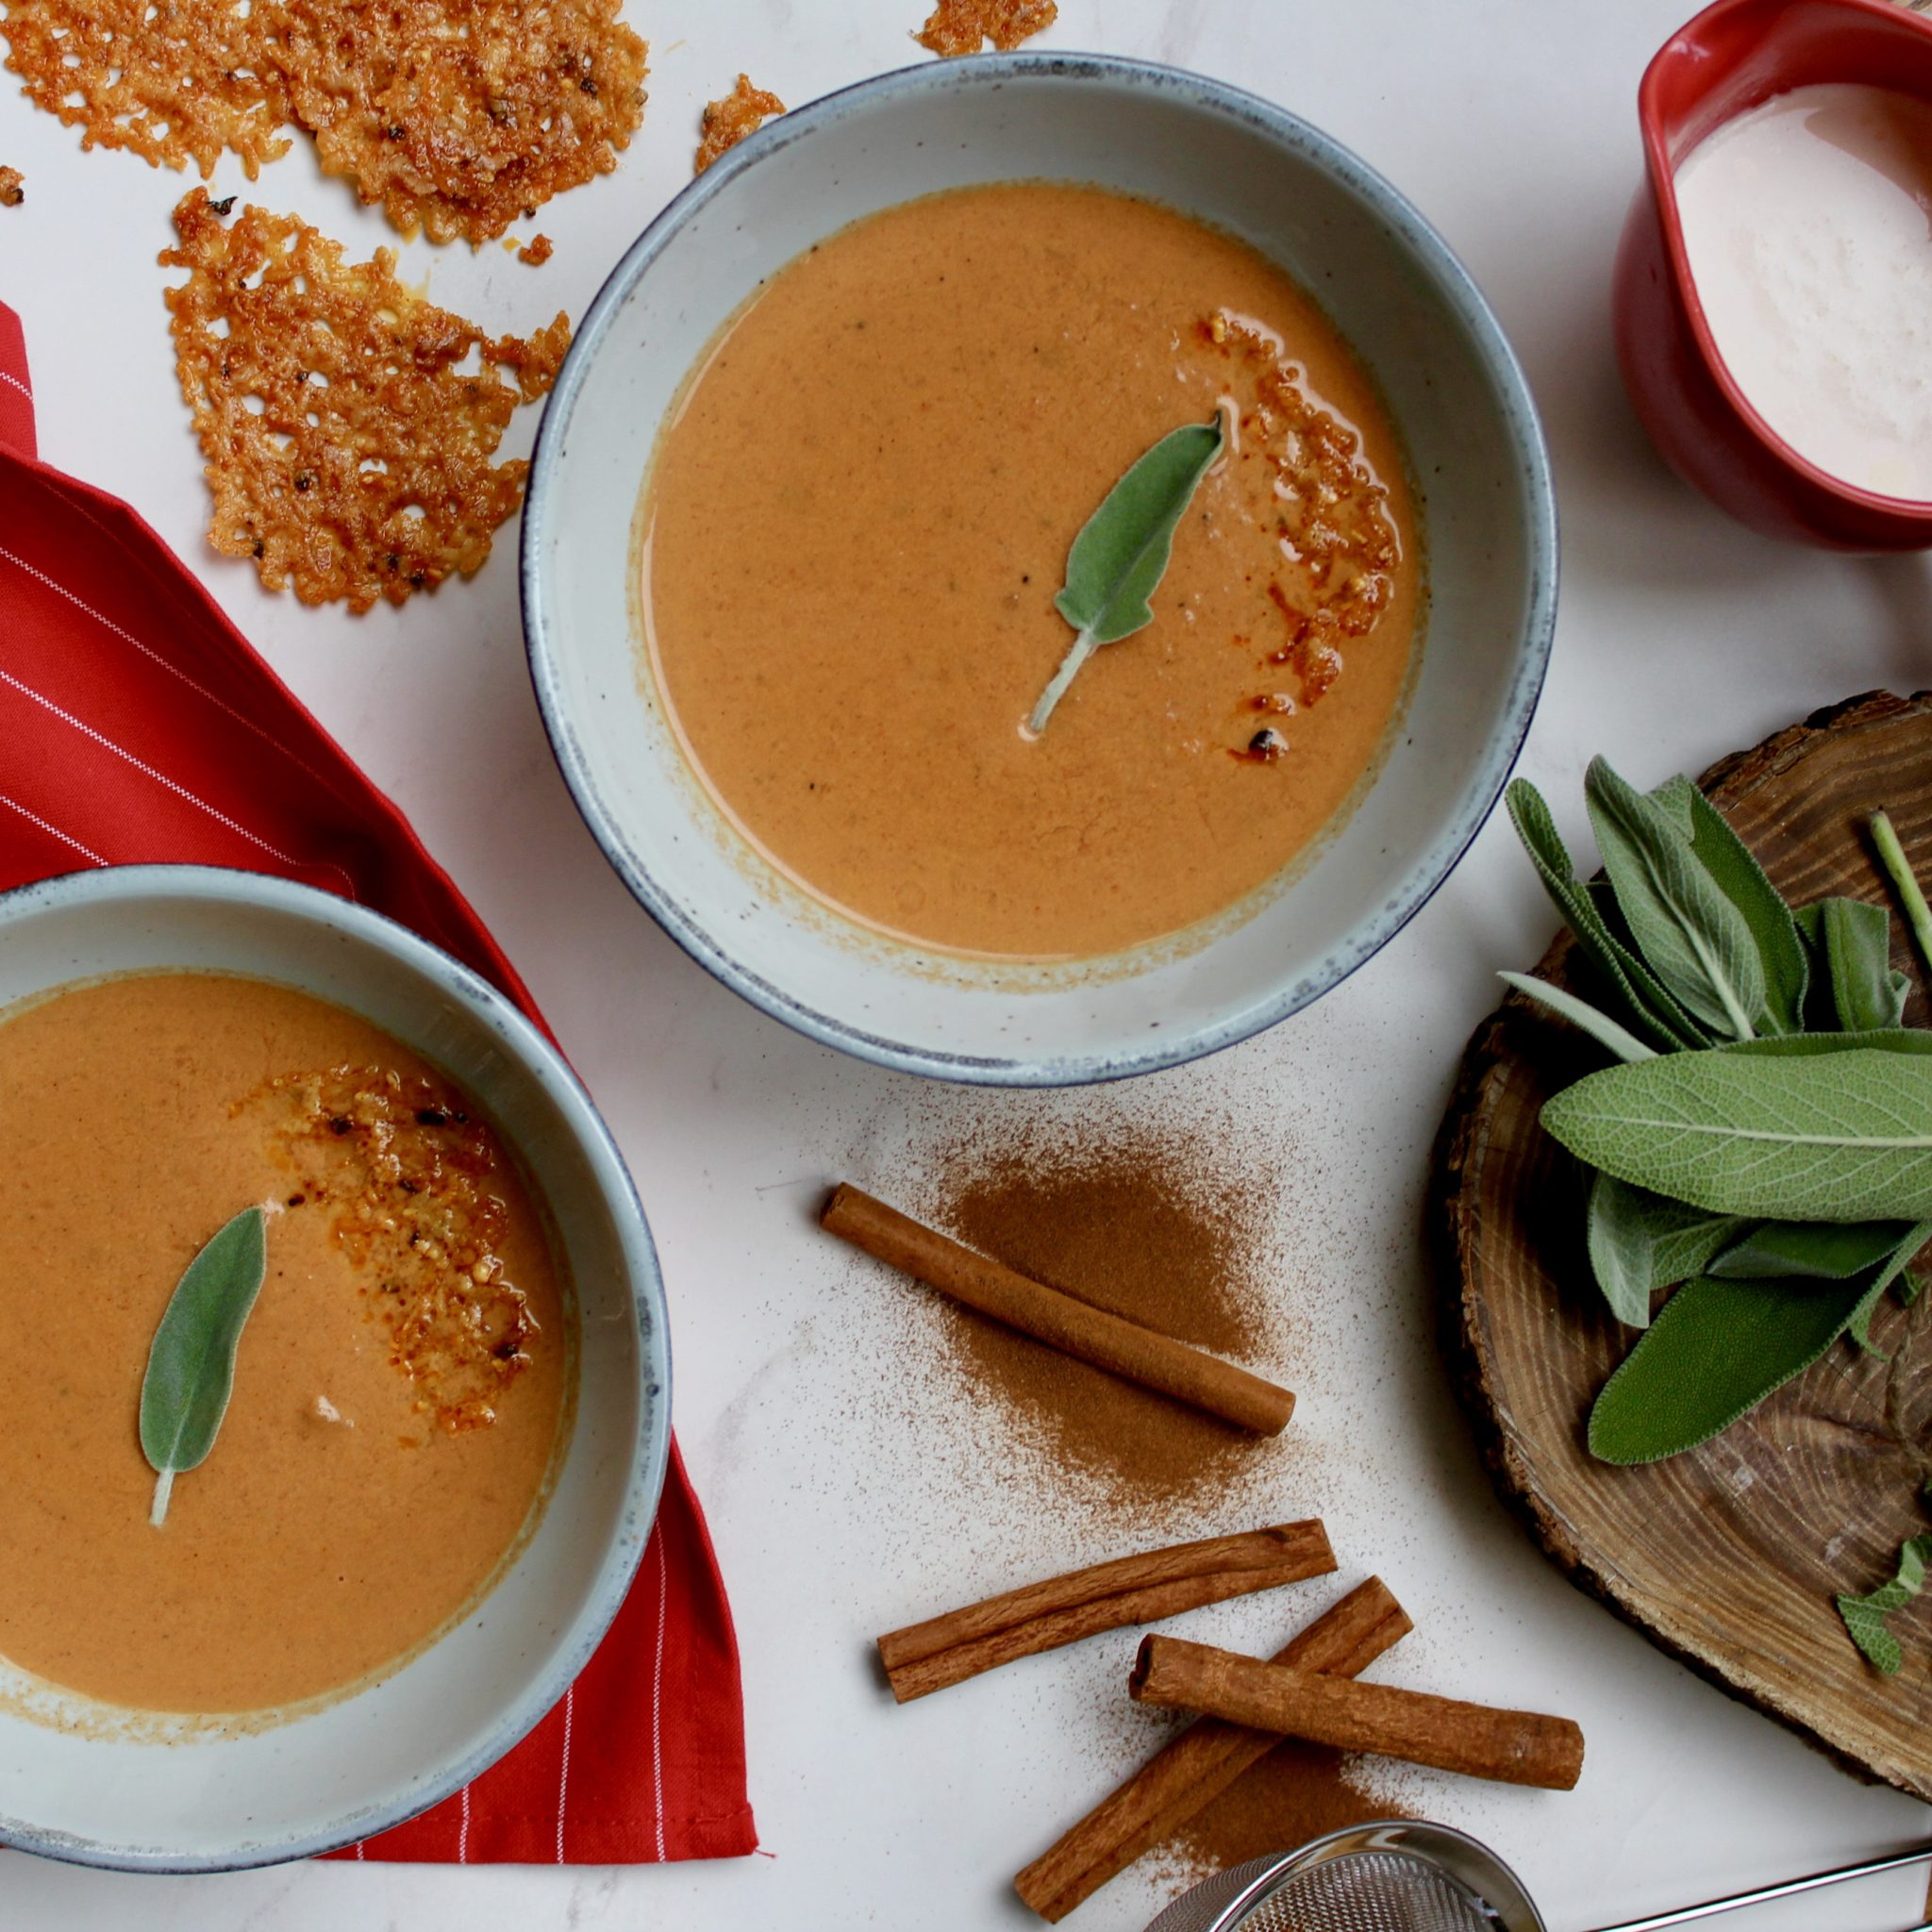 Tomato and Sage Spiced Soup with Parmesan Crisps